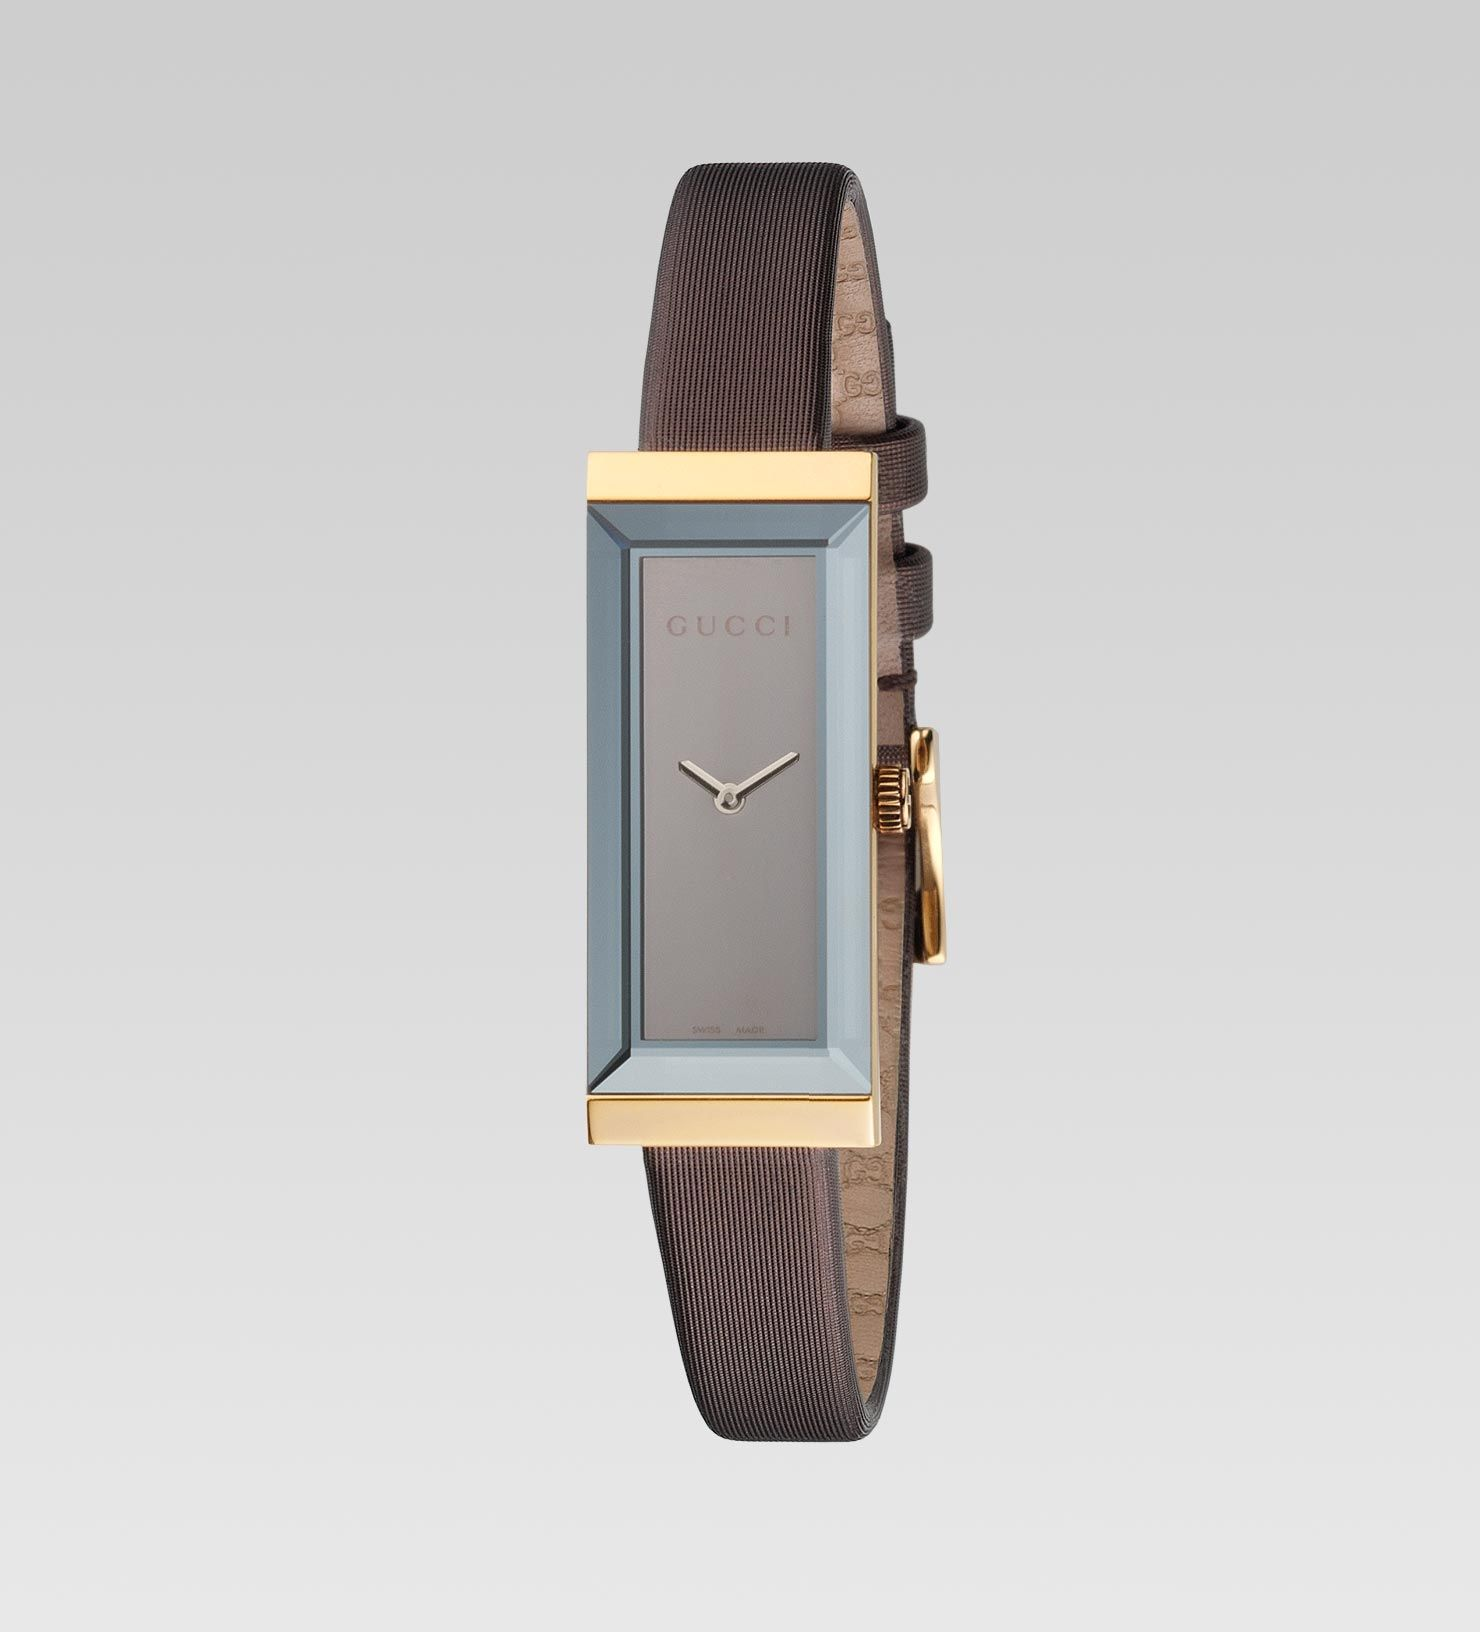 Gucci G-Frame Watch   Gucci Watches   Pinterest   Gucci and Gucci gucci